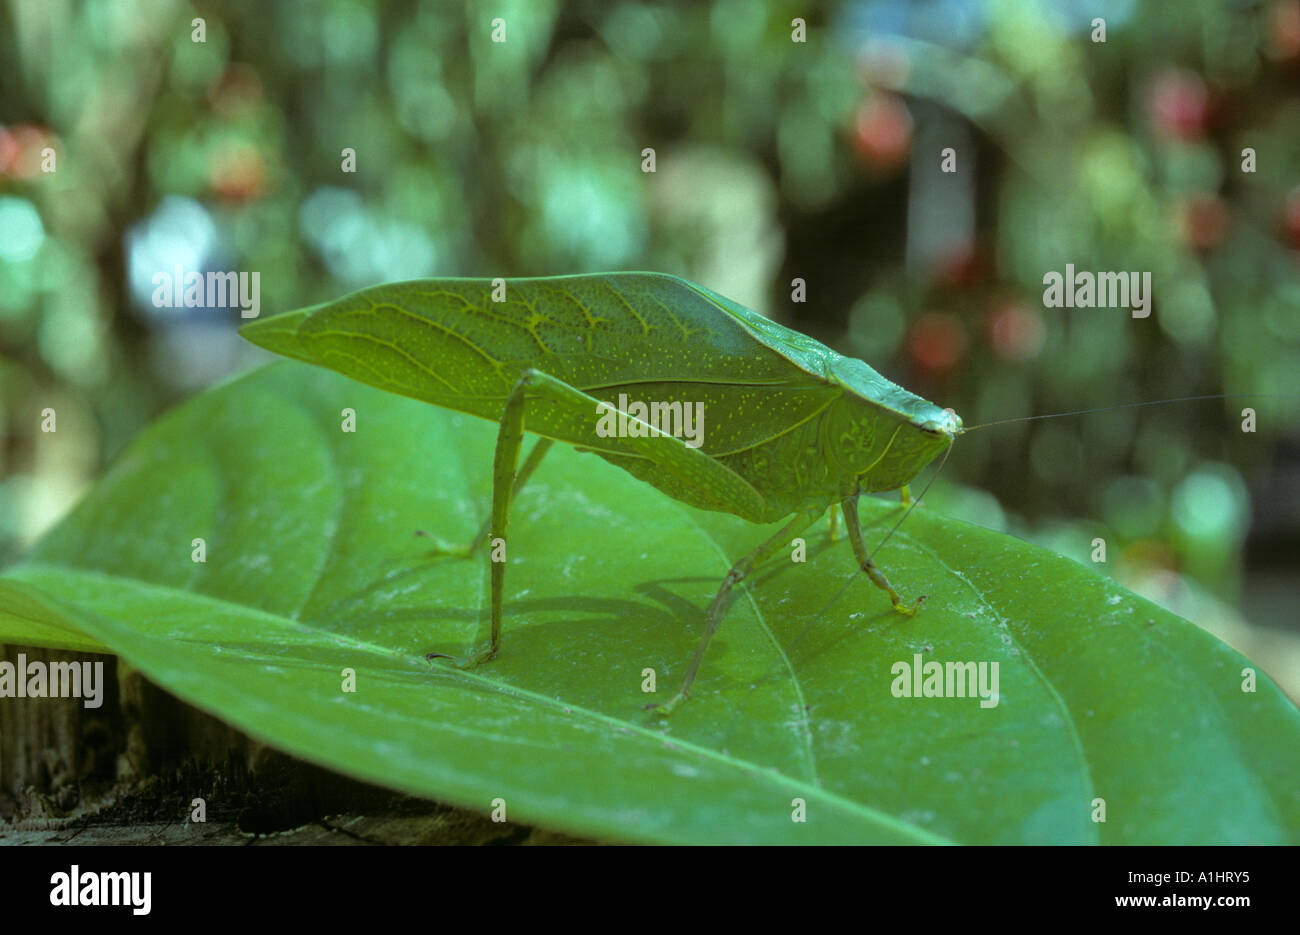 download Unsaturated Soil